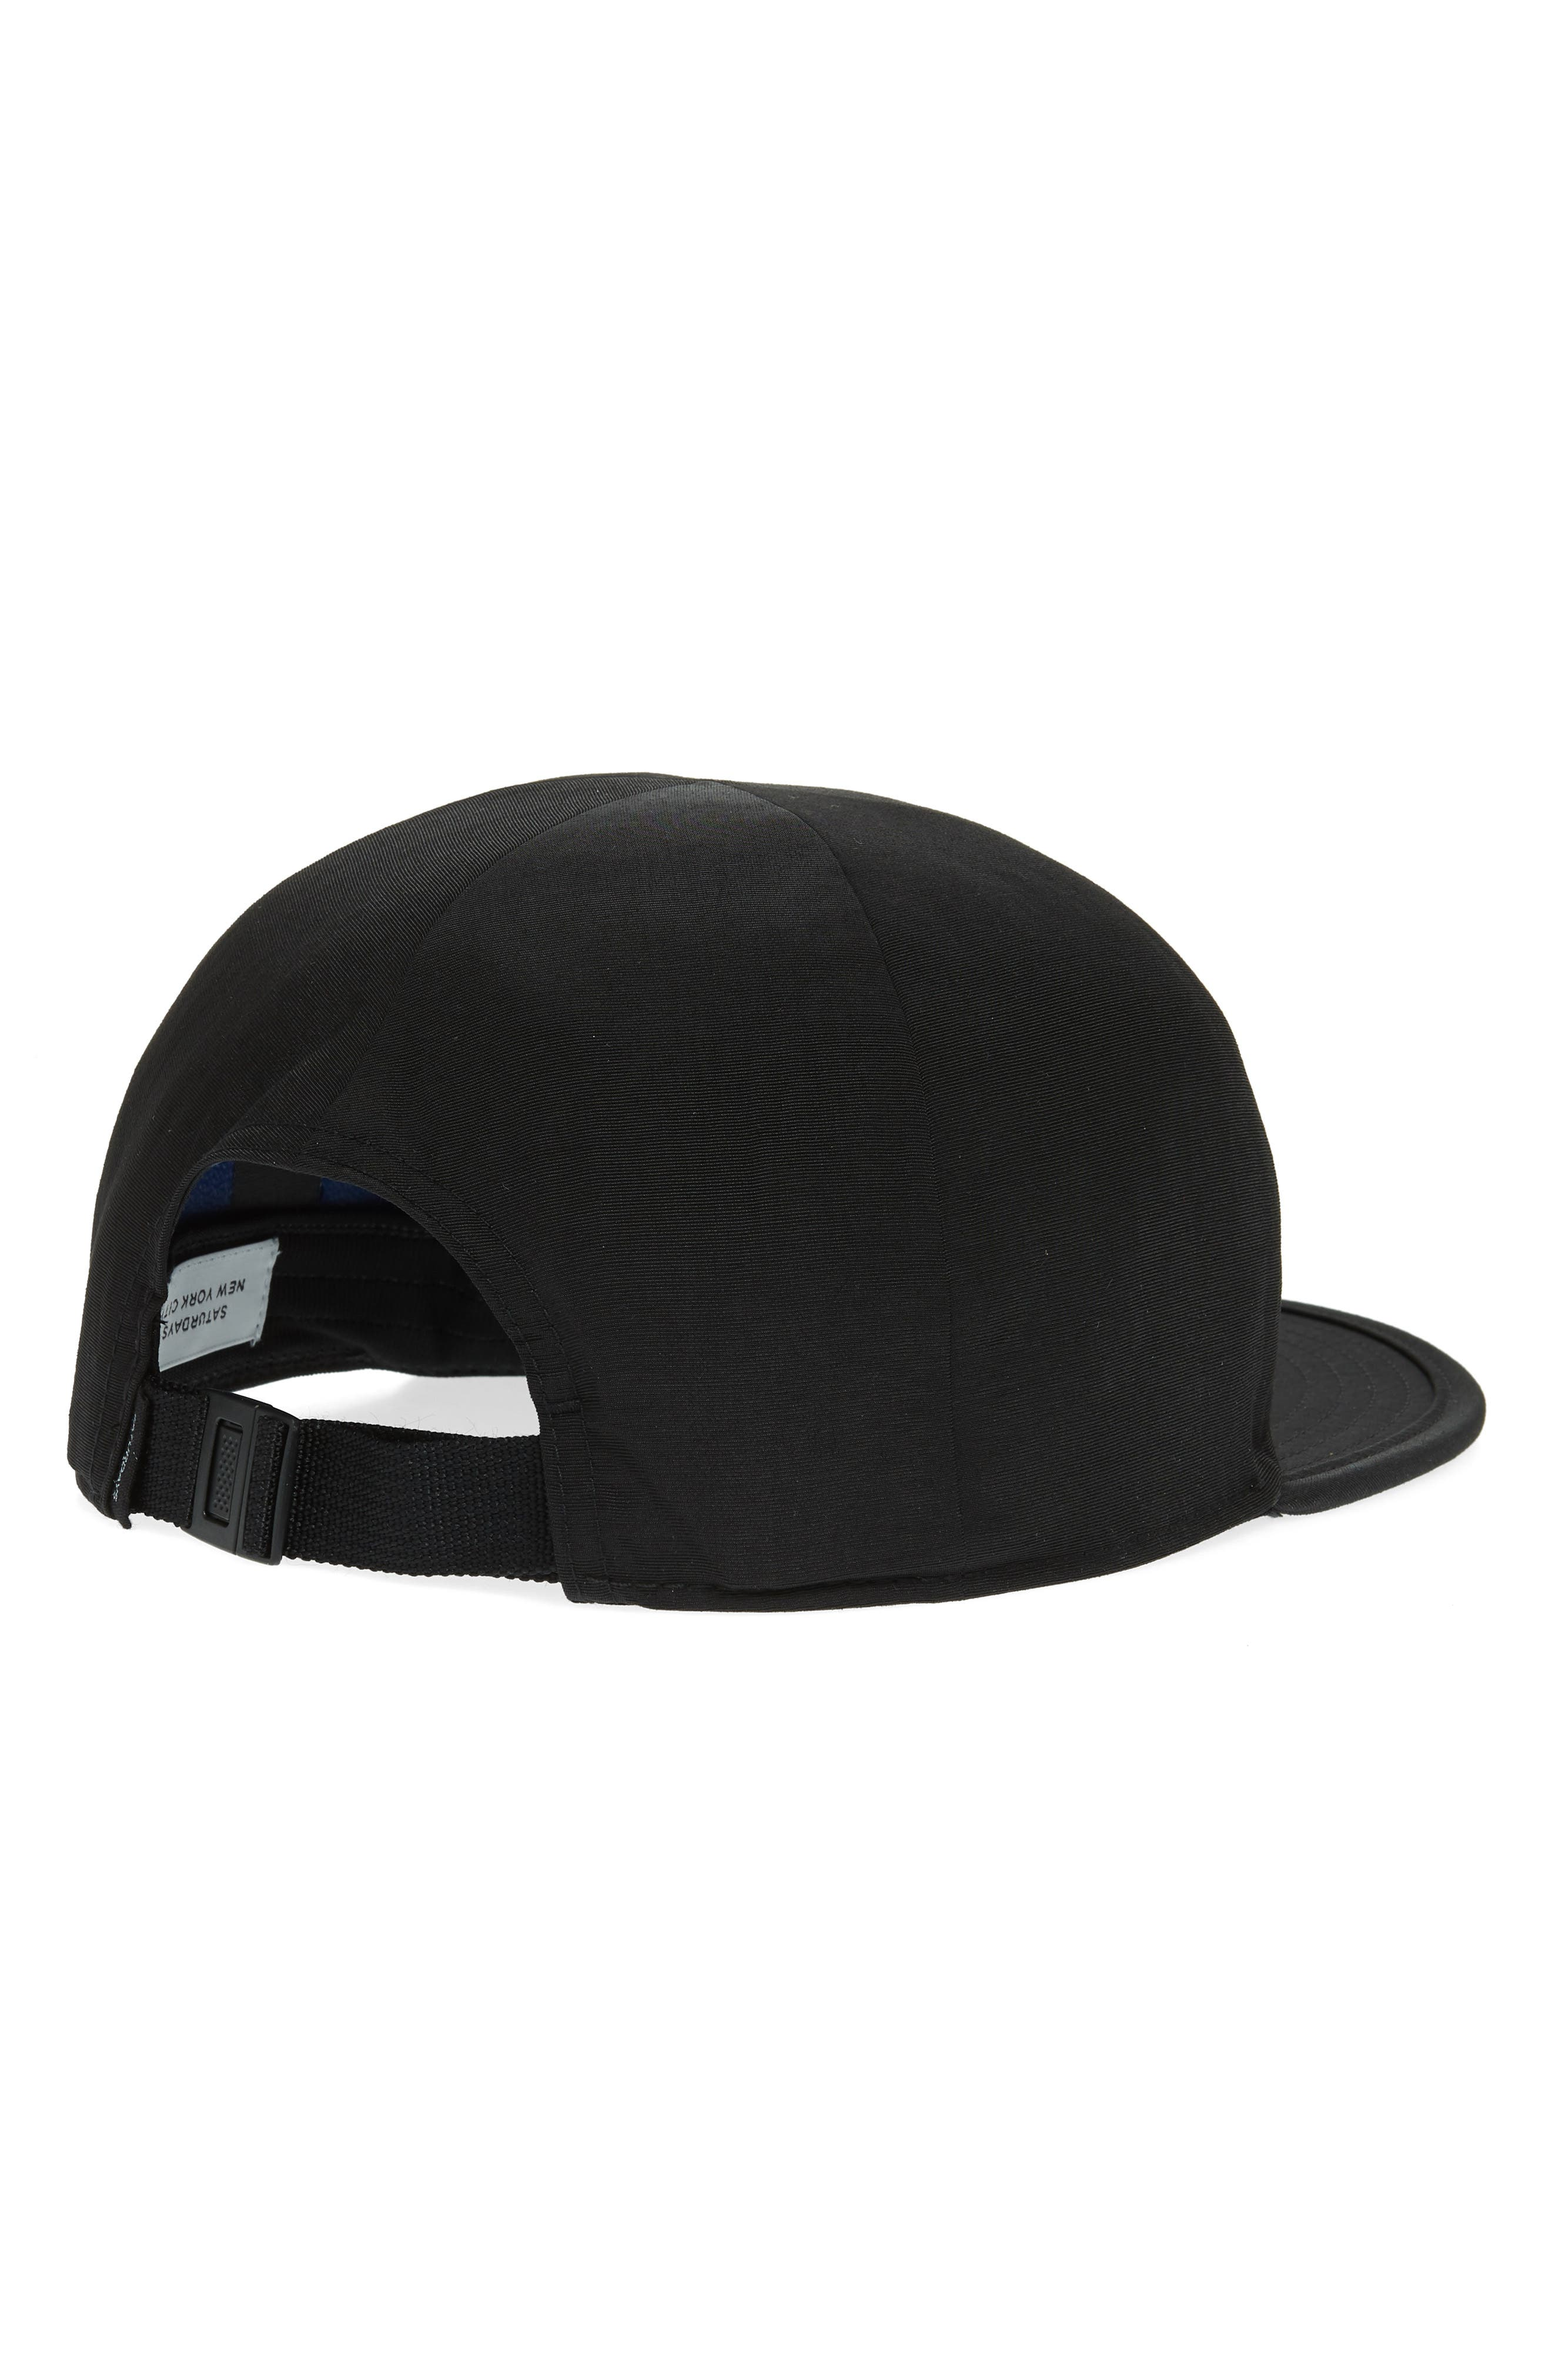 Canyon Baseball Cap,                             Alternate thumbnail 2, color,                             BLACK